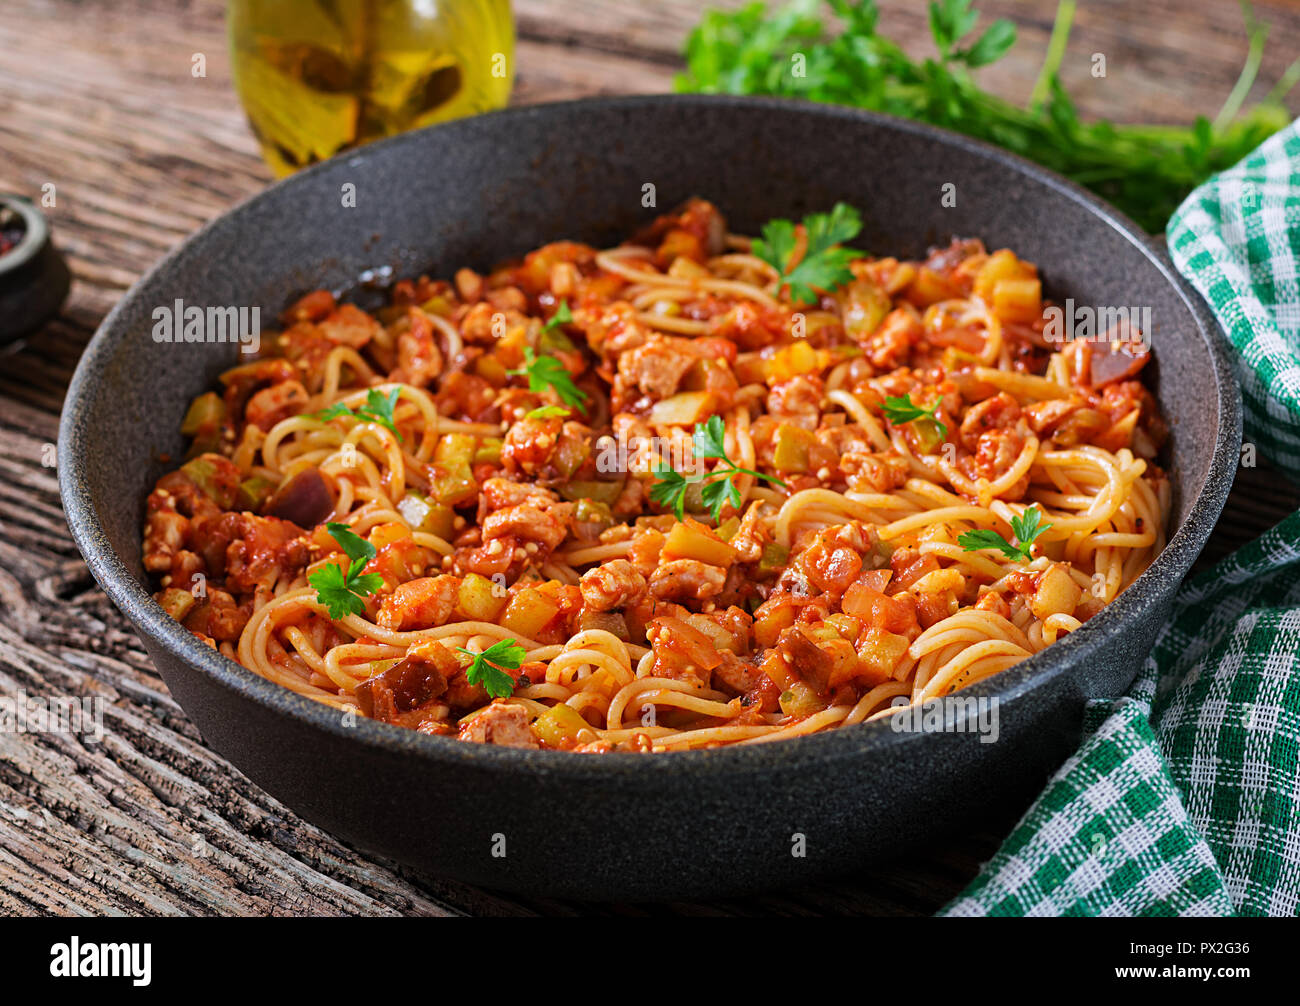 Spaghetti Bolognese Pasta With Tomato Sauce Vegetables And Minced Meat Homemade Healthy Italian Pasta On Rustic Wooden Background Stock Photo Alamy